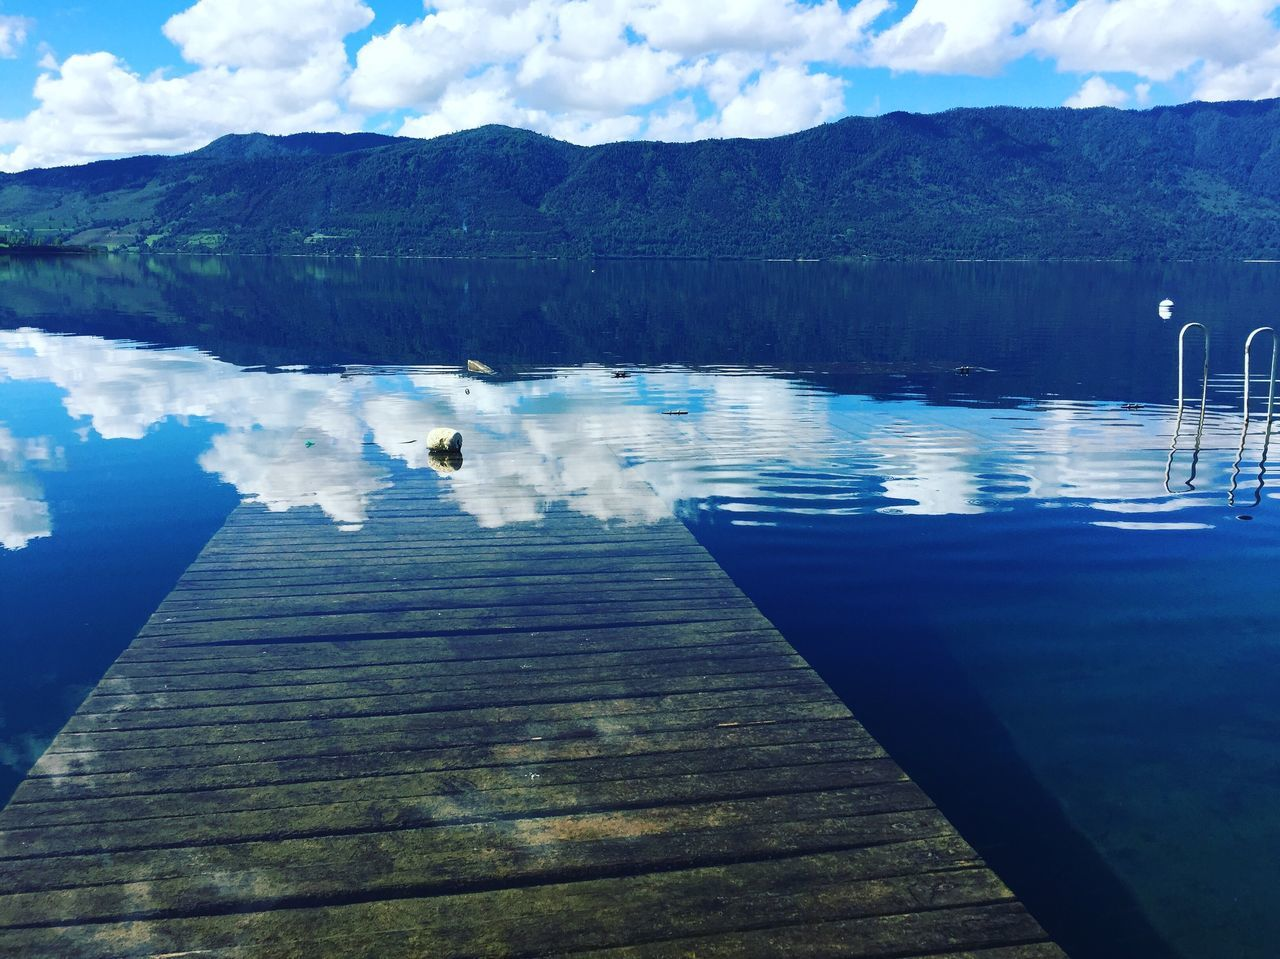 water, reflection, tranquility, tranquil scene, sky, nature, beauty in nature, scenics, lake, day, no people, outdoors, blue